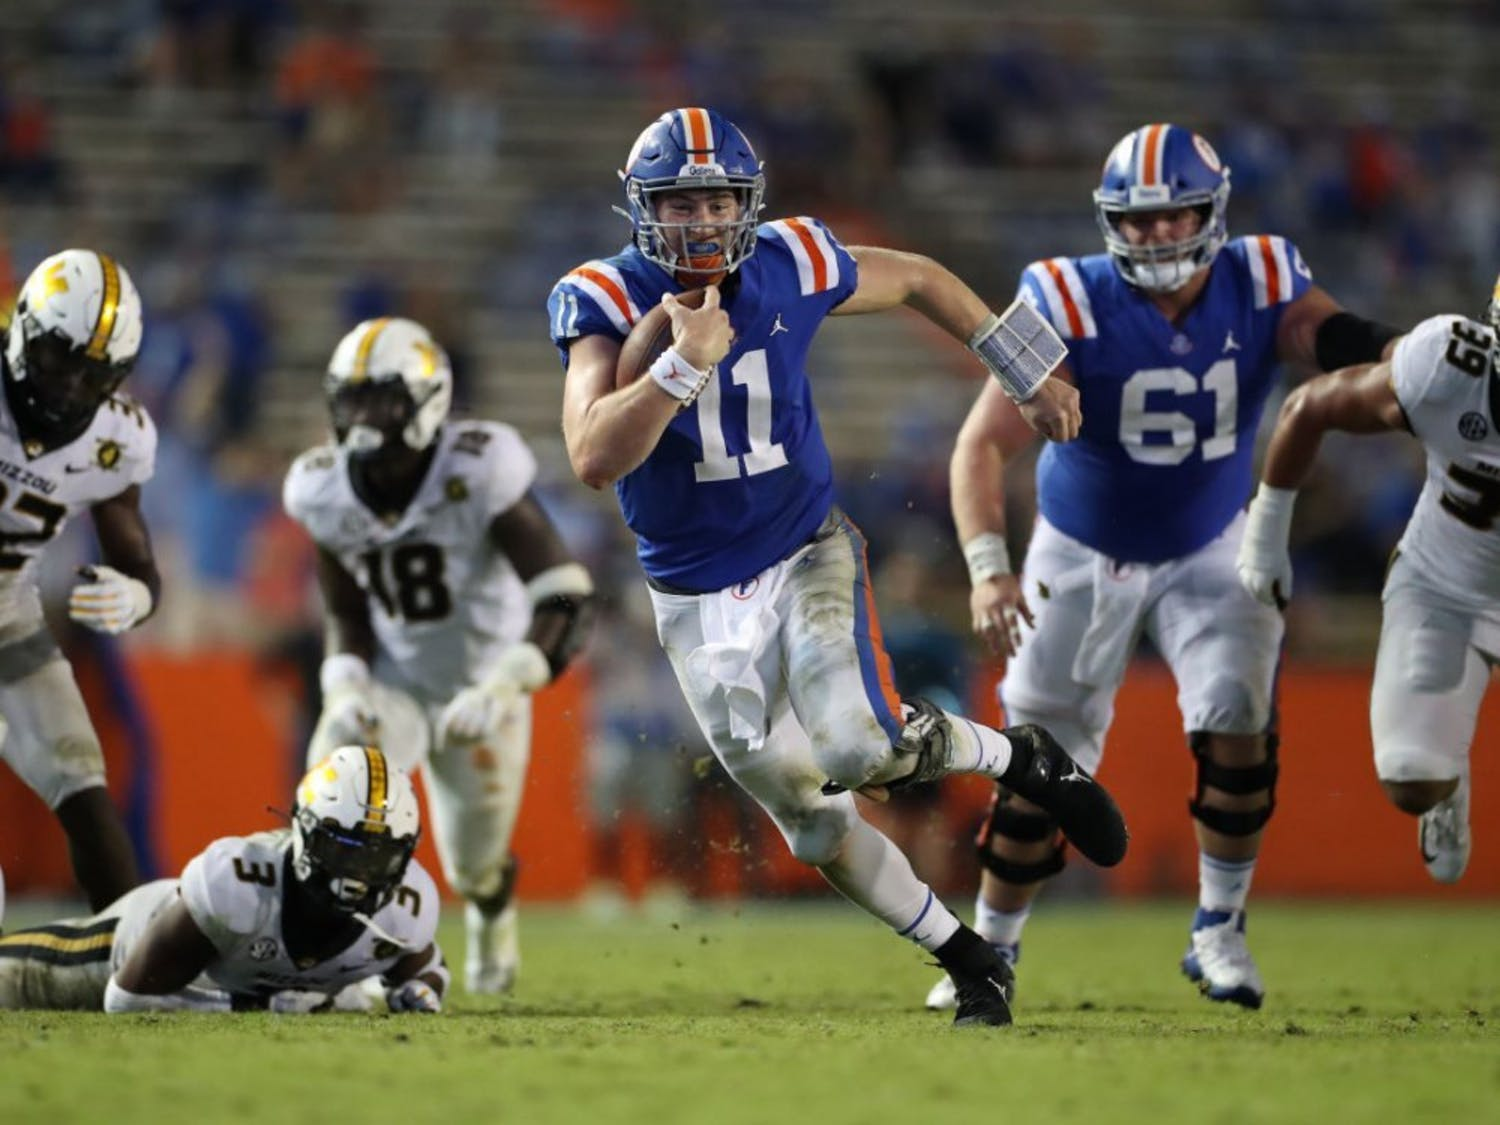 Kyle Trask darts through Missouri defenders in Florida's game versus Missouri on Oct. 31. He and senior Kadarius Toney will lead the Gators in their charge against Georgia this weekend.